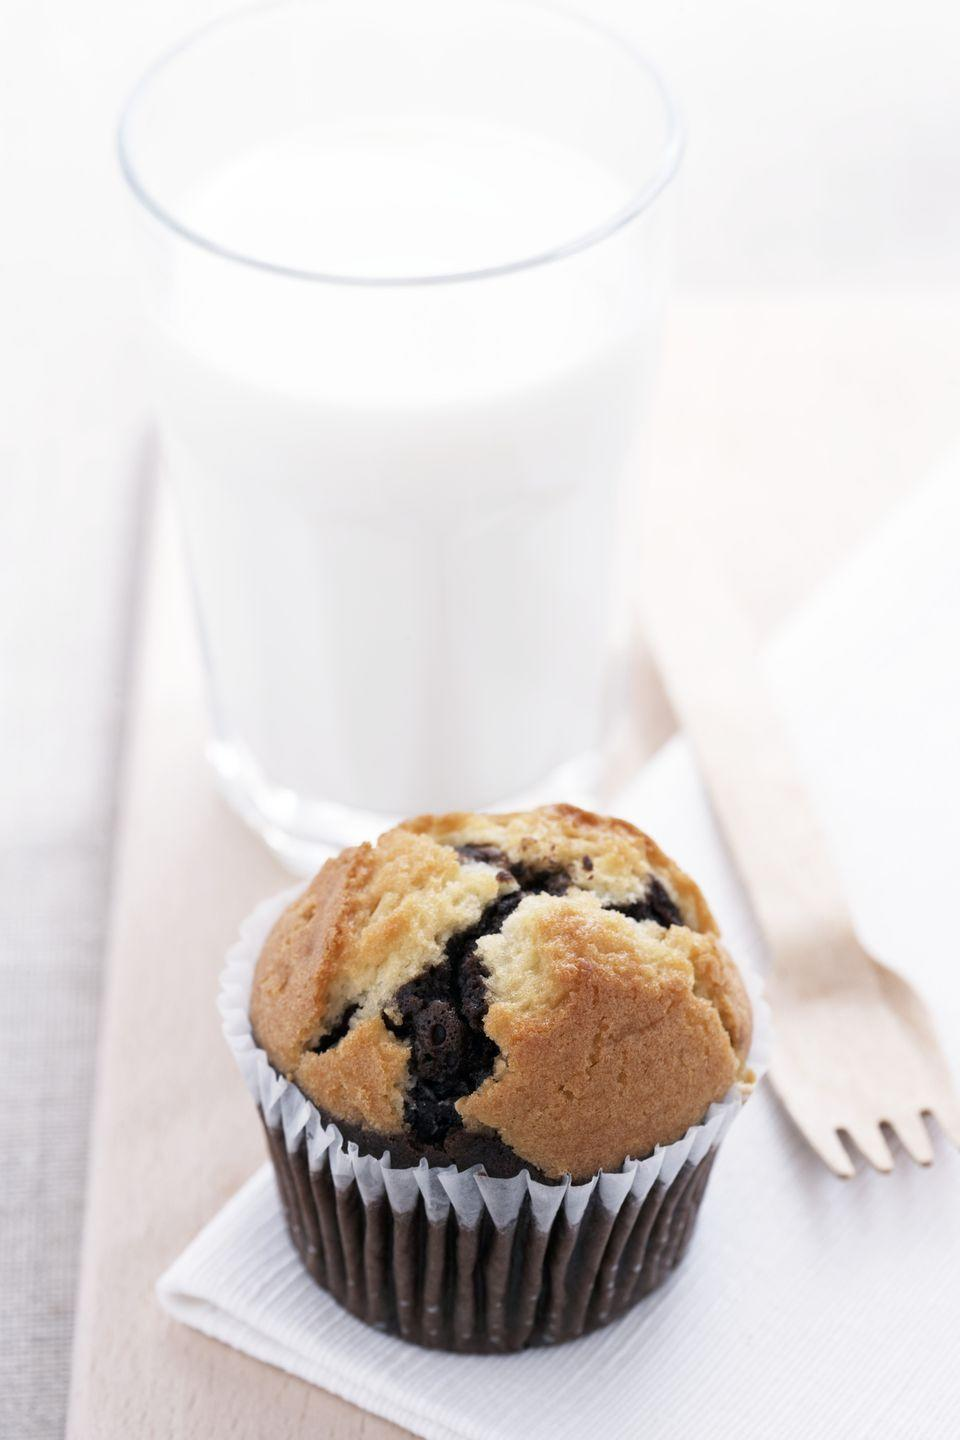 """<p>Just-picked corn, plump blueberries, and a dusting of raw sugar kick this basic corn muffin up a notch. </p><p><strong><a href=""""https://www.countryliving.com/food-drinks/recipes/a2905/blueberry-corn-muffins-recipe/"""" rel=""""nofollow noopener"""" target=""""_blank"""" data-ylk=""""slk:Get the recipe"""" class=""""link rapid-noclick-resp"""">Get the recipe</a>.</strong><br></p>"""